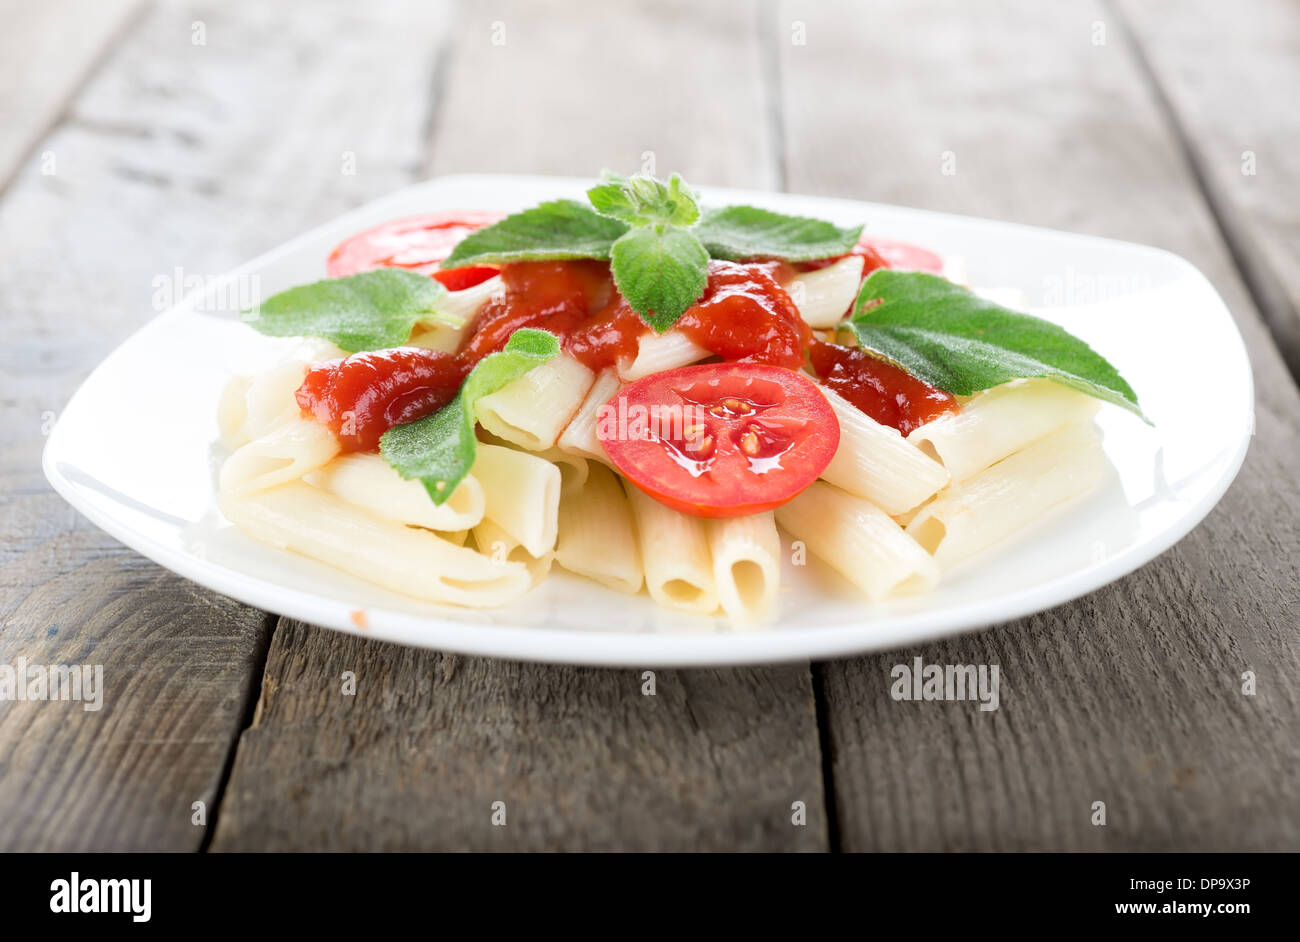 Pasta with vegetables on a wooden table - Stock Image